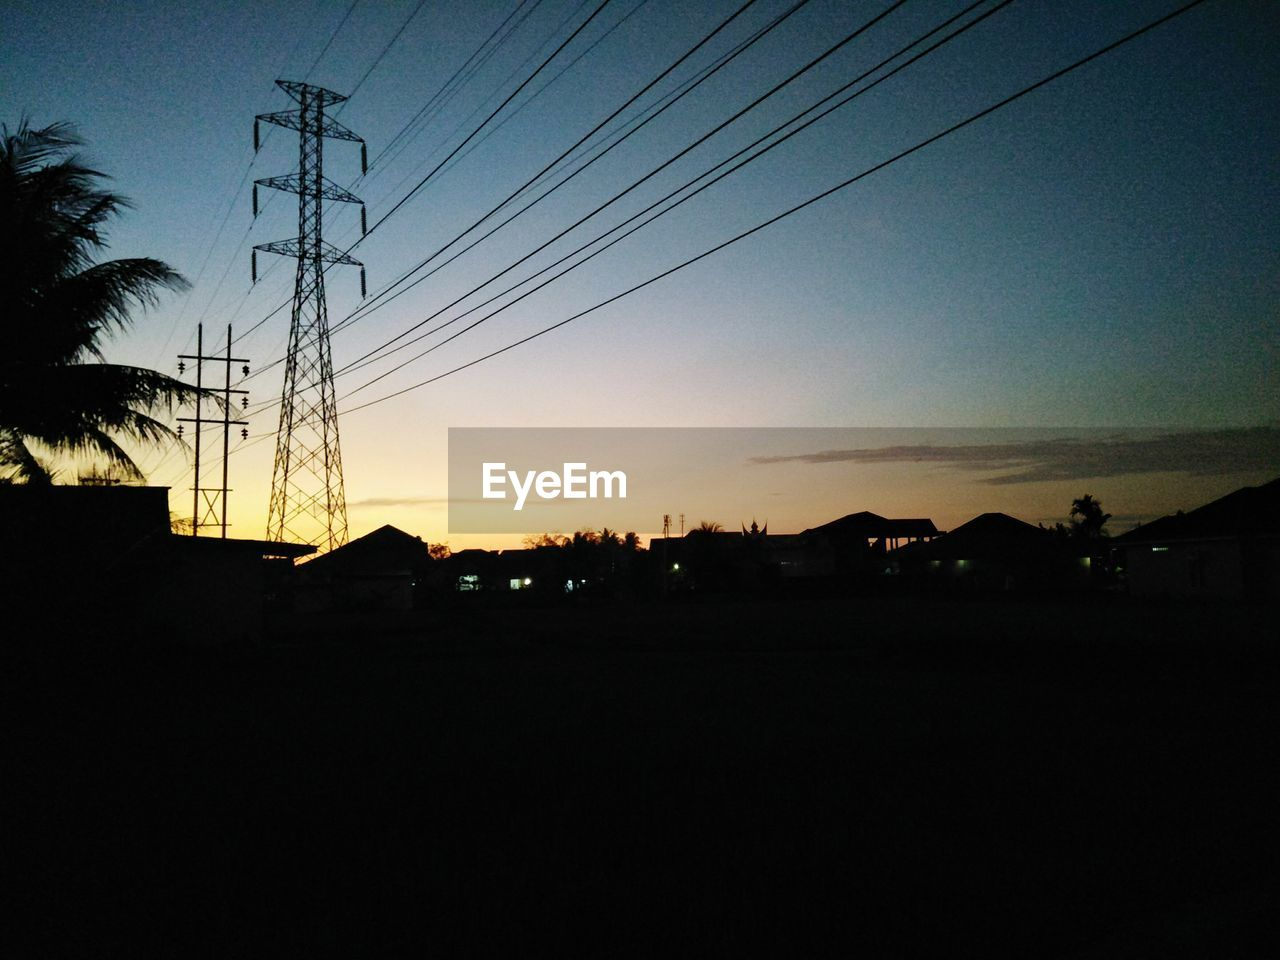 sky, electricity, cable, silhouette, technology, sunset, power line, electricity pylon, fuel and power generation, power supply, connection, no people, architecture, nature, built structure, copy space, building exterior, scenics - nature, landscape, tranquility, dark, outdoors, telephone line